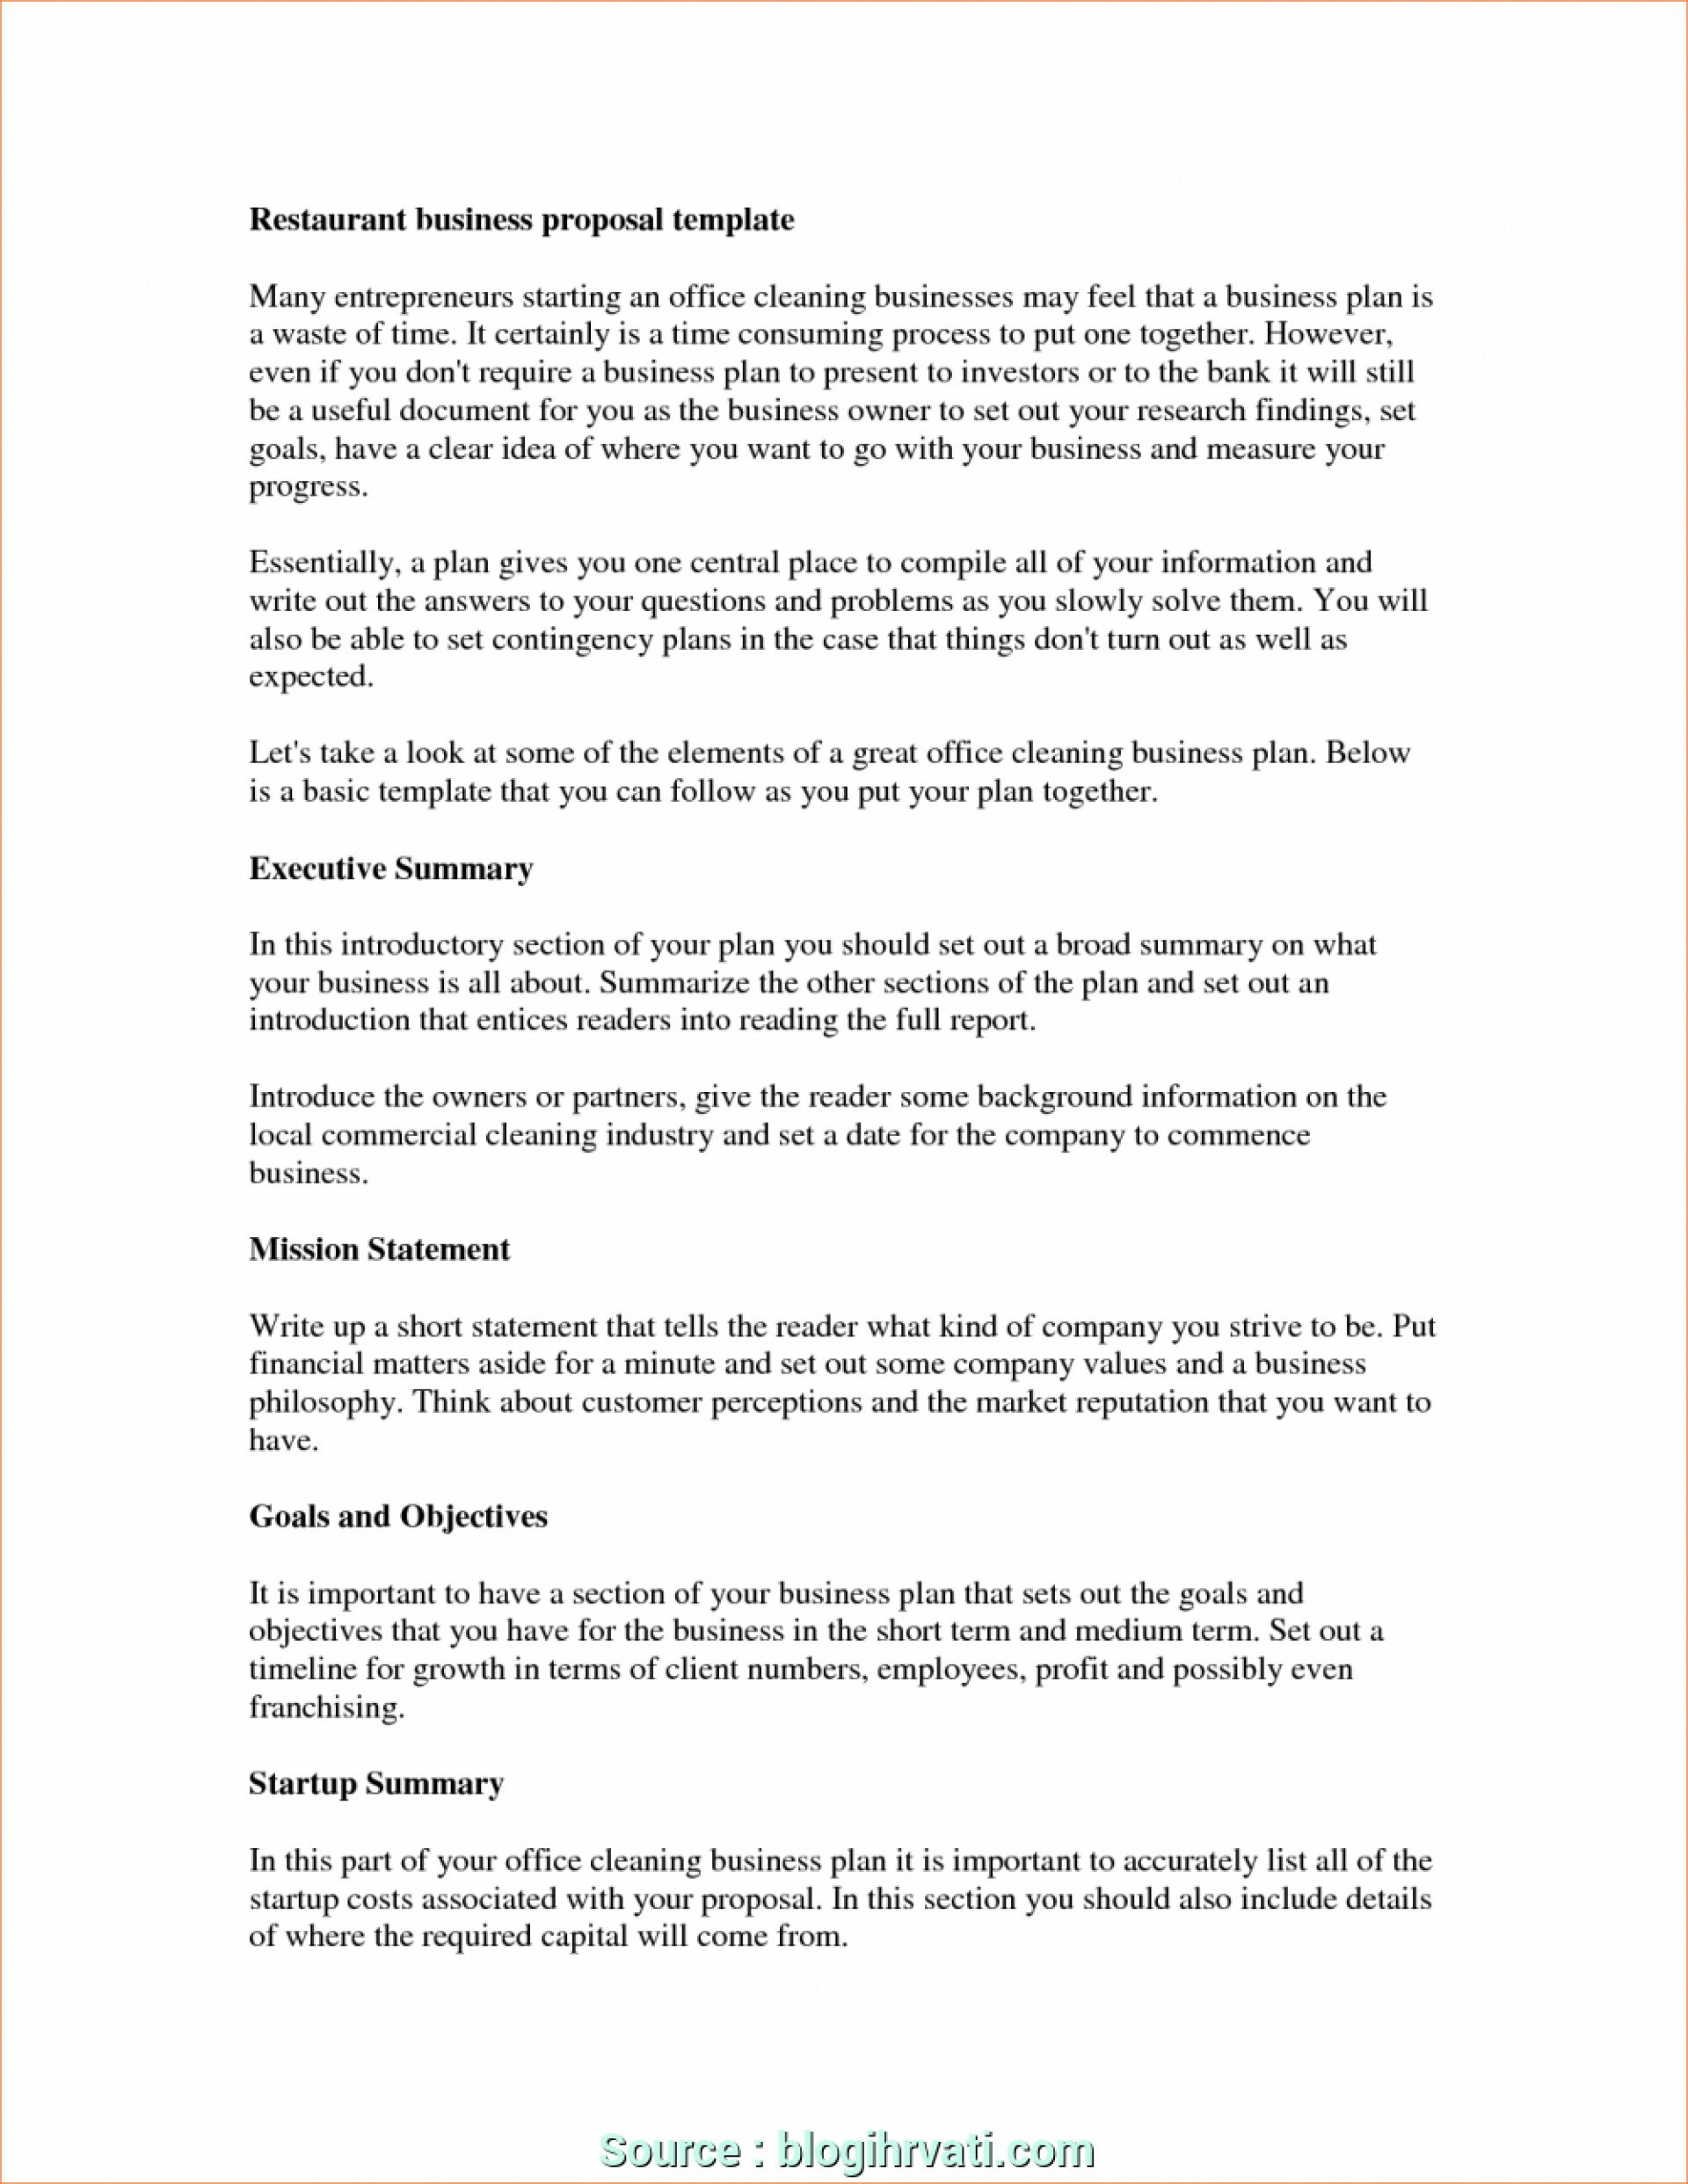 Restaurant Business Plan Template Templates Fantastic Excel Pdf With Restaurant Business Proposal Template